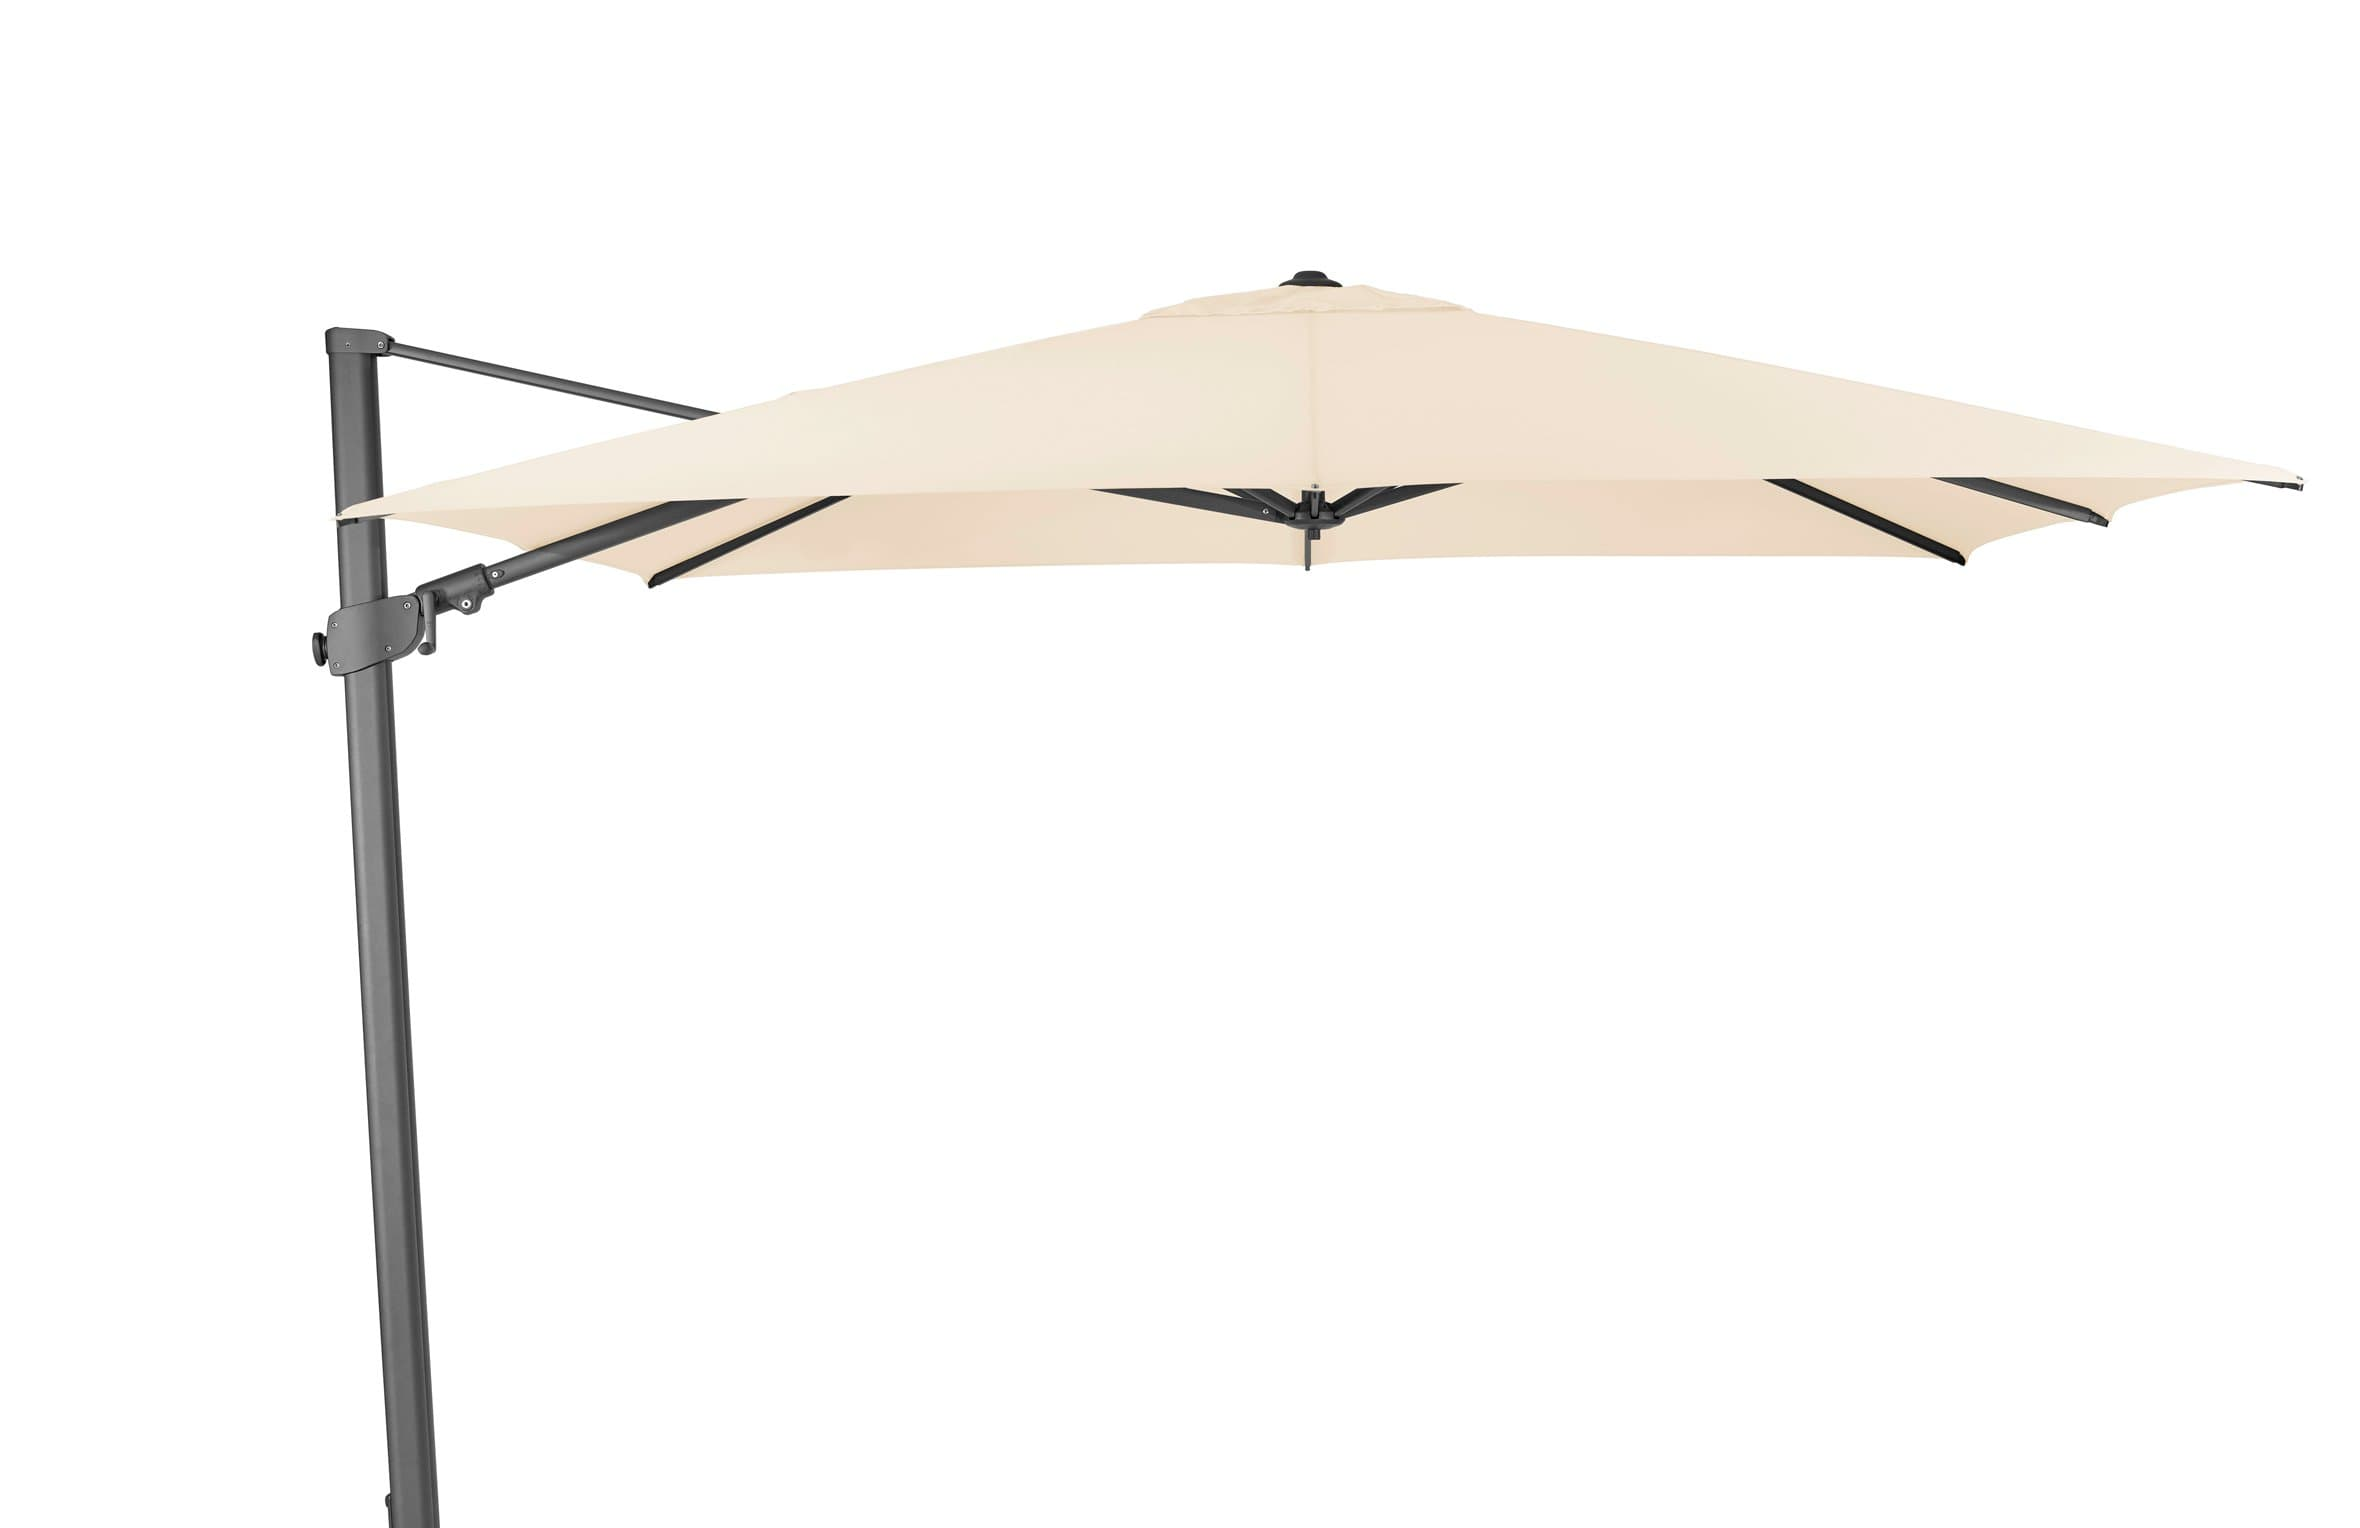 suncomfort by glatz varioflex parasol 300 x 300 migros. Black Bedroom Furniture Sets. Home Design Ideas